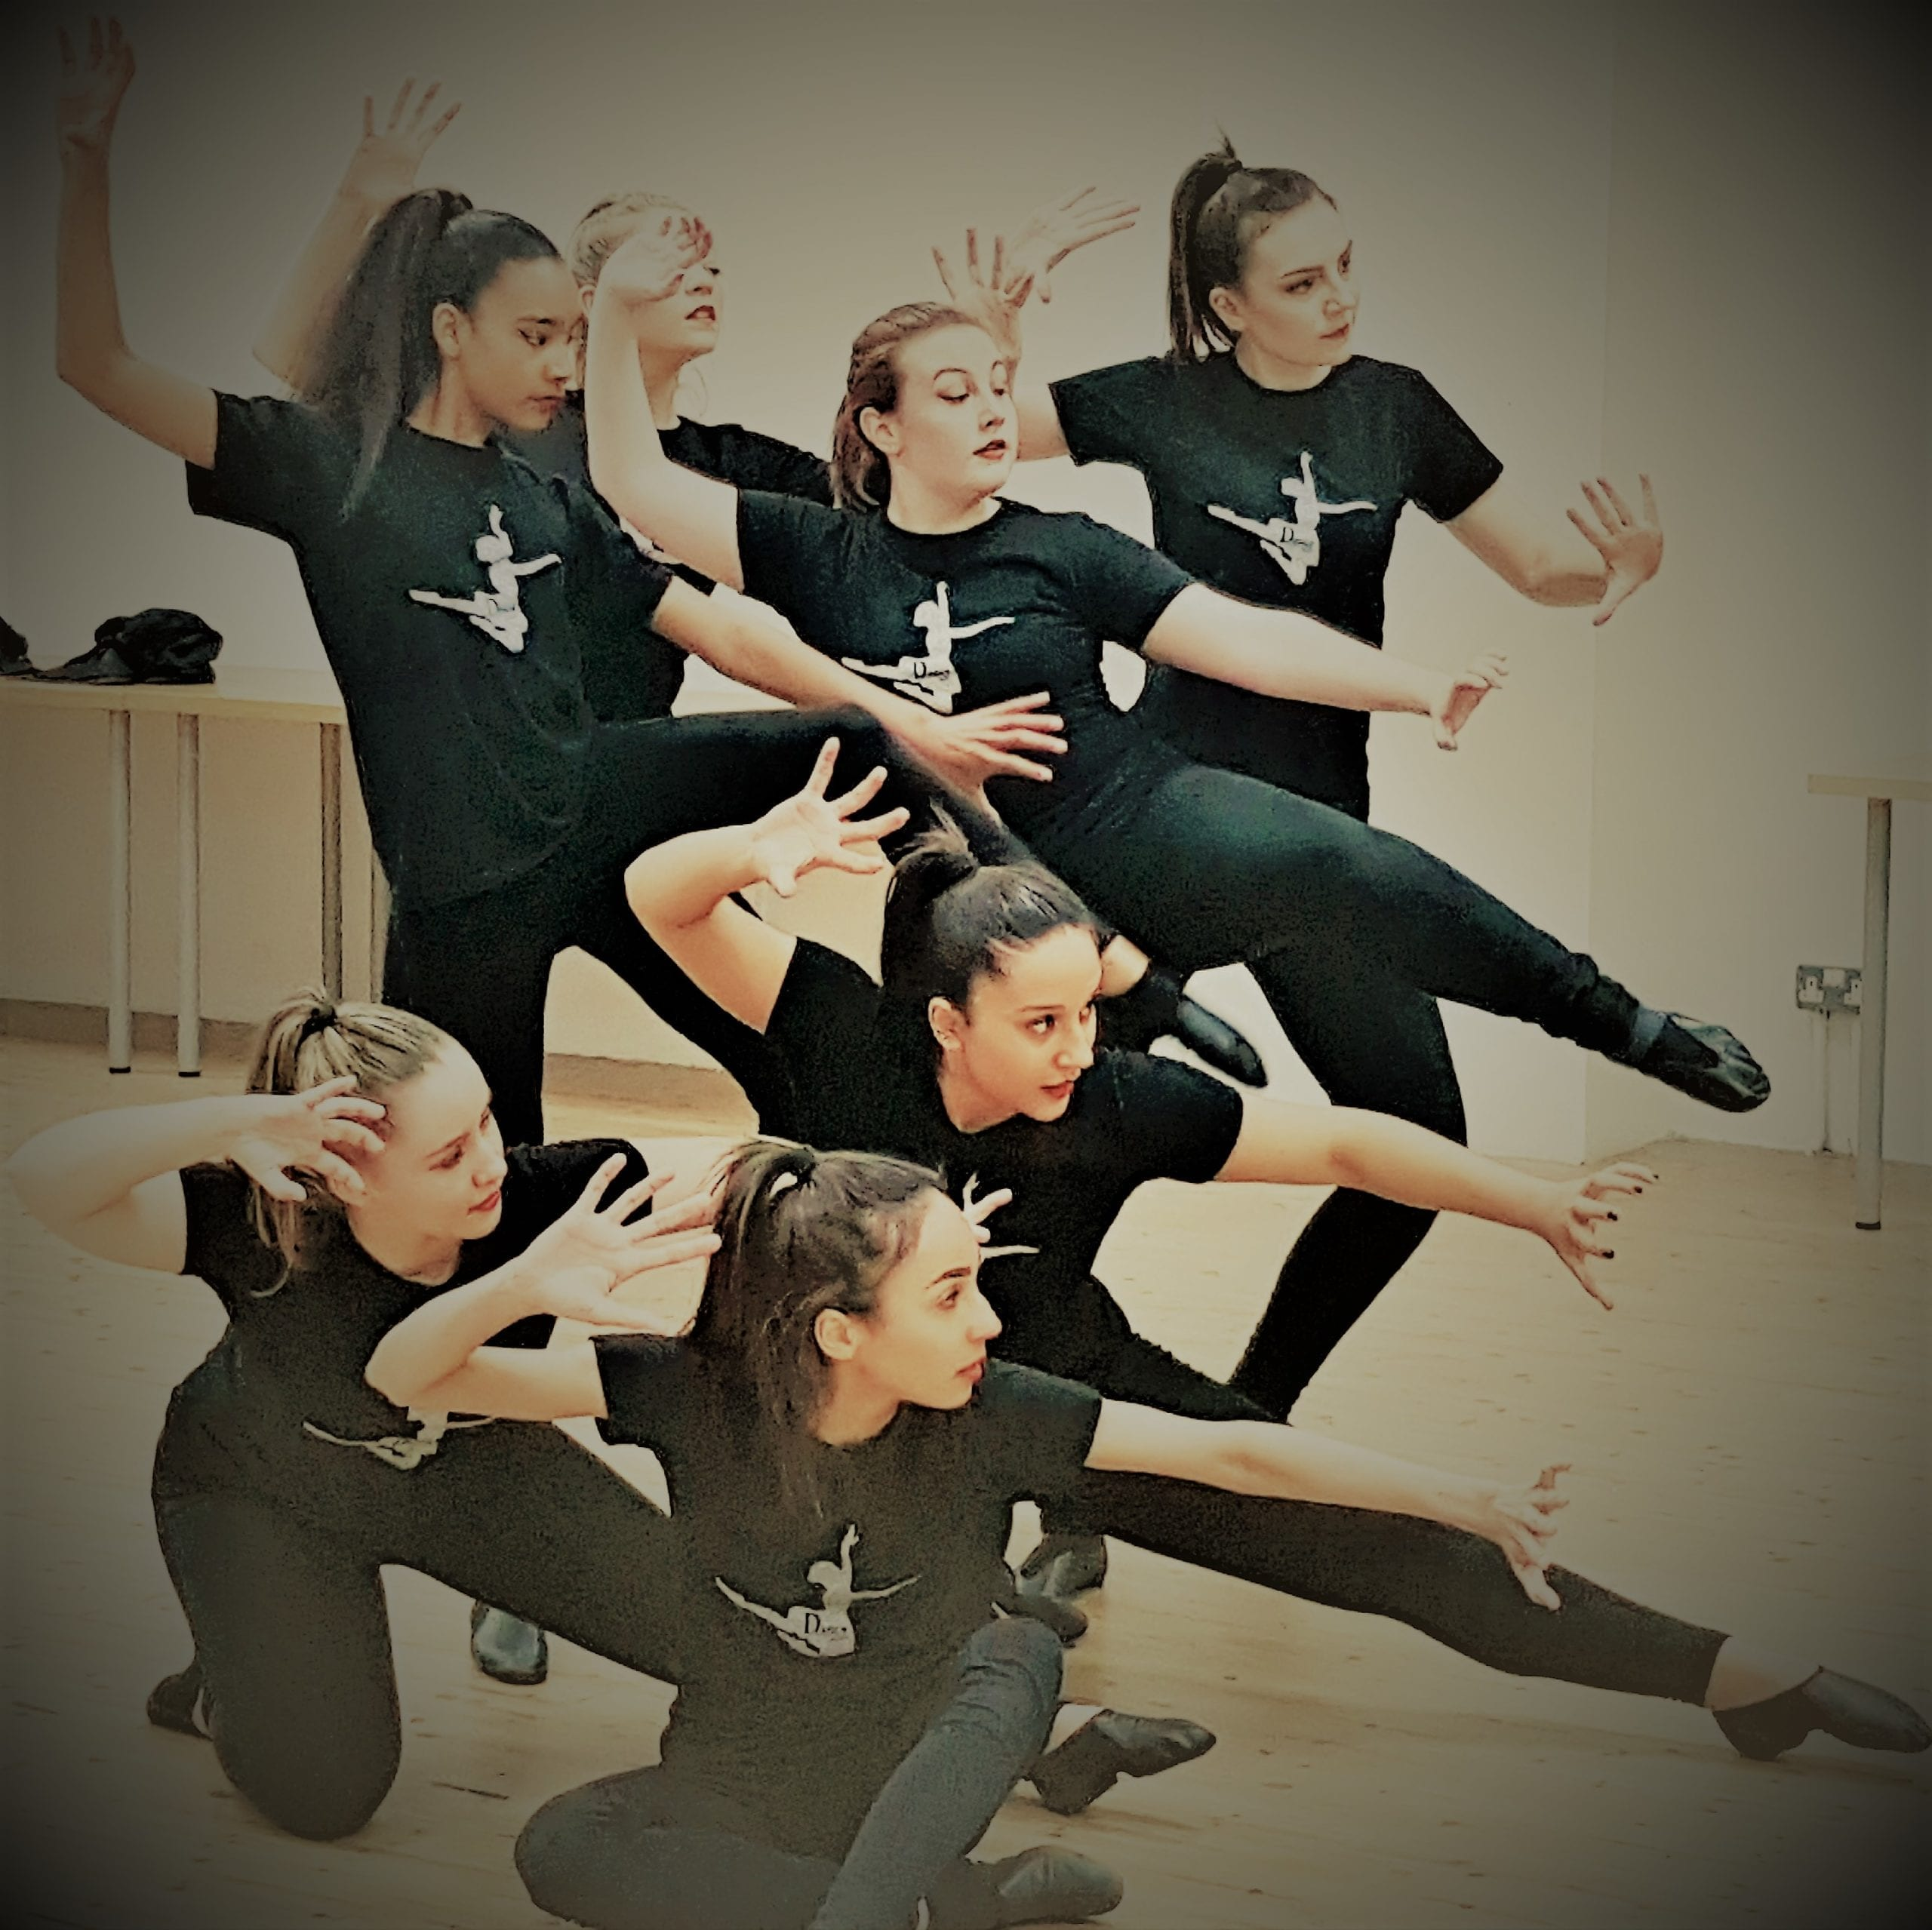 A group of young female dancers dressed in black